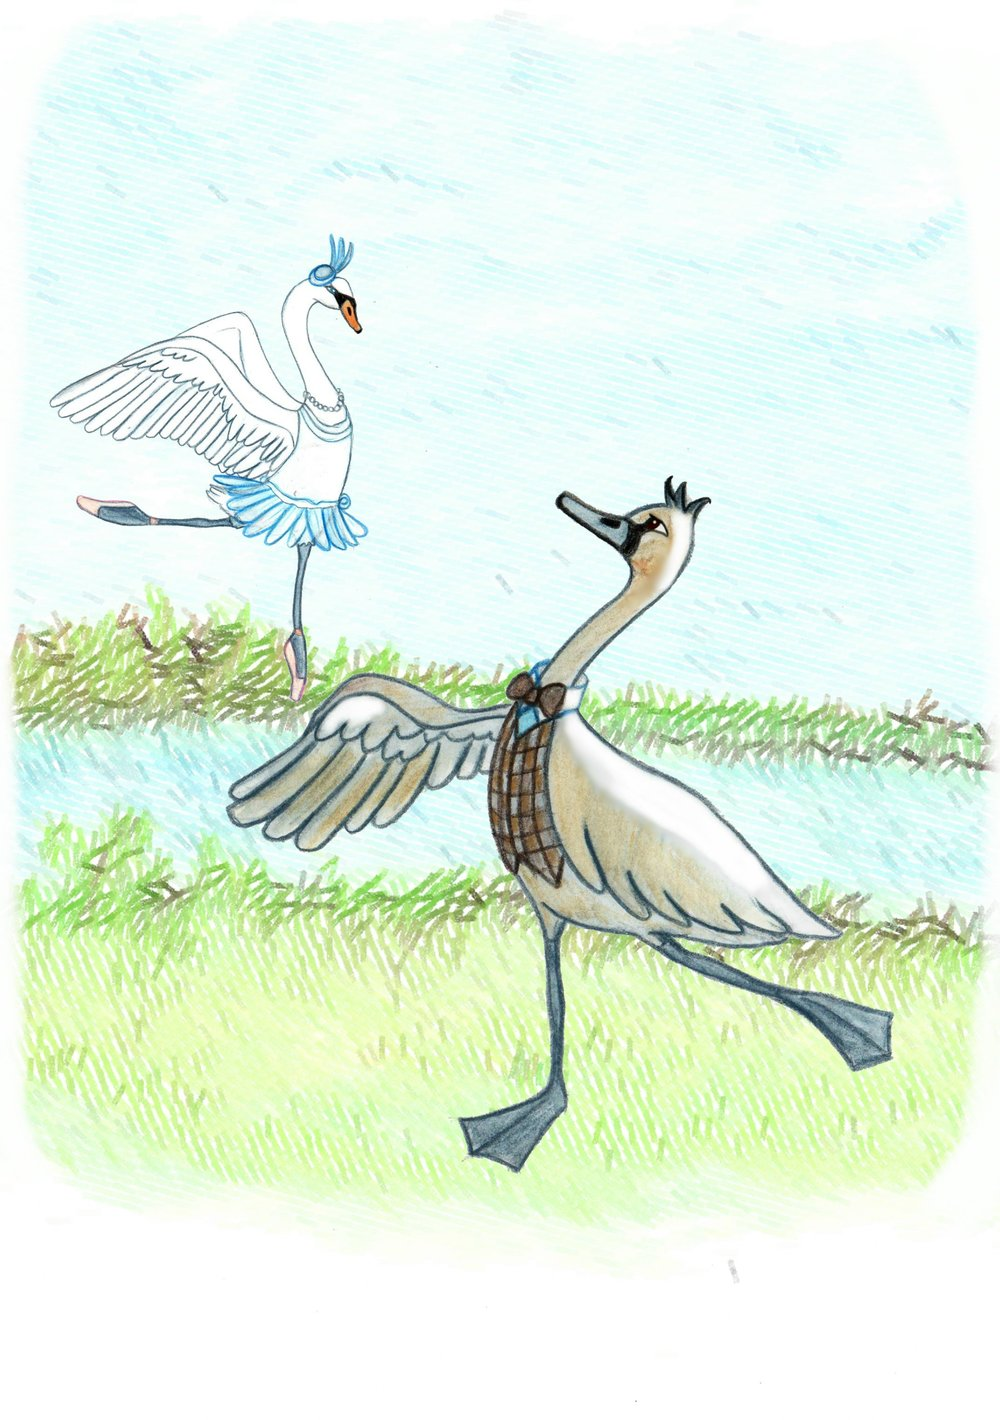 The Ugly Duckling - By Let's All Dance